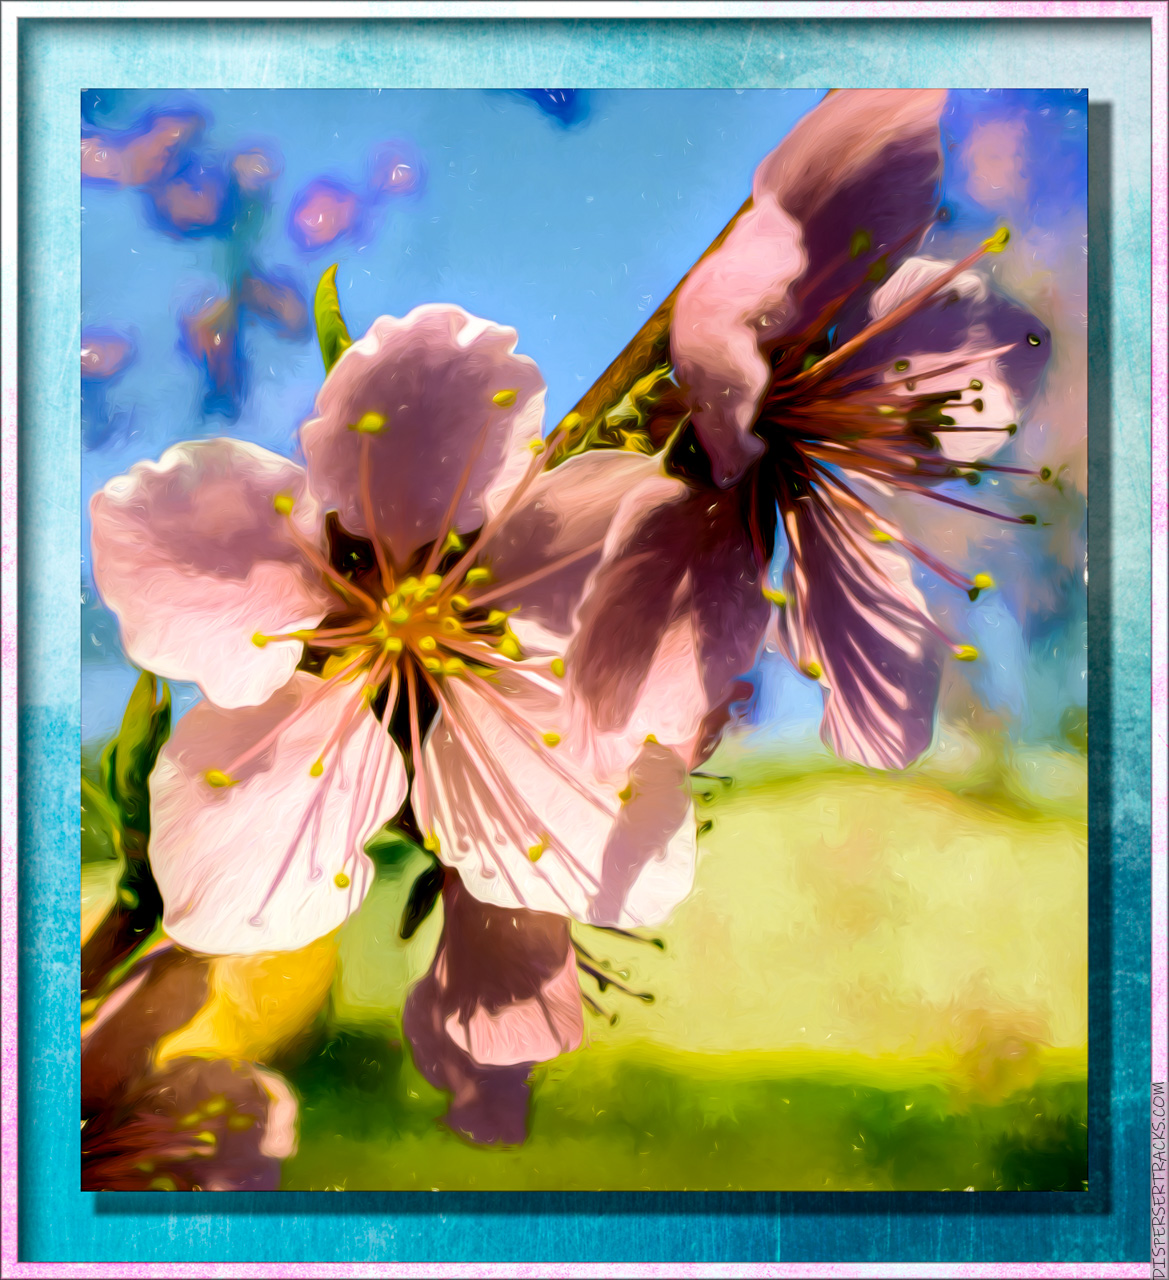 Dogwood tree flowers turned into a framed painting.